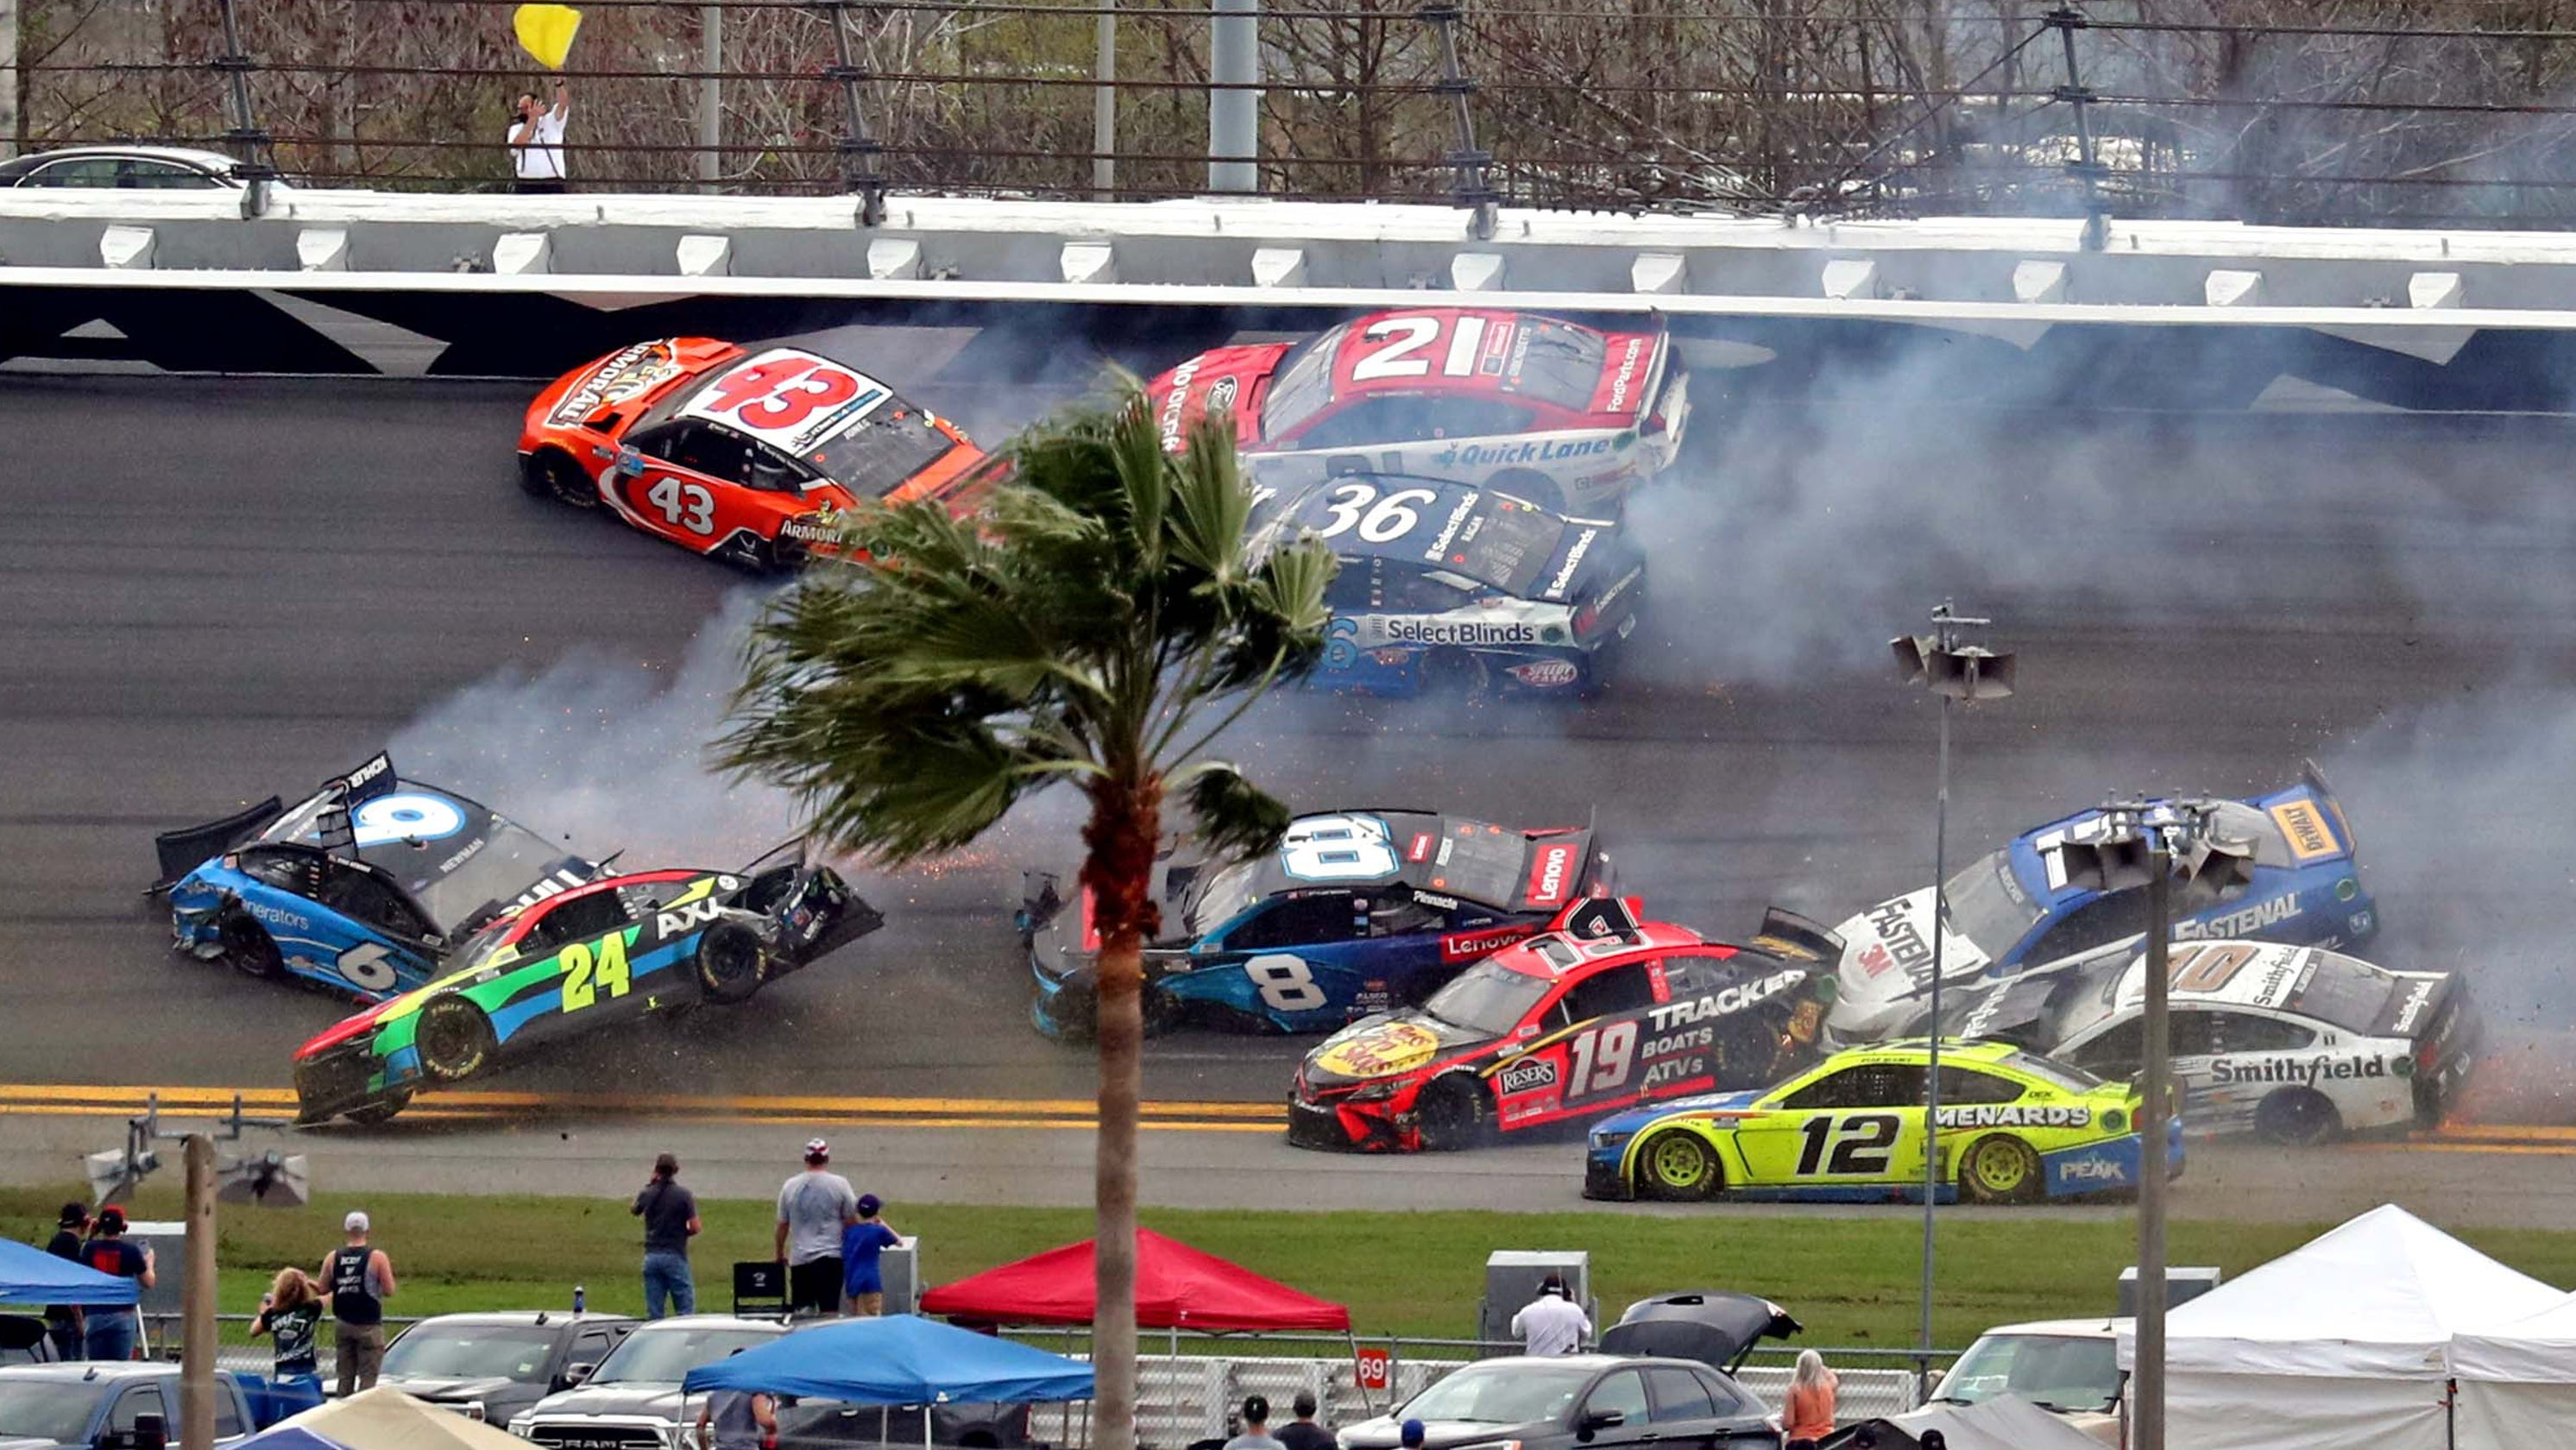 The 'Big One' strikes early as multicar crash unfolds before rain strikes Daytona 500